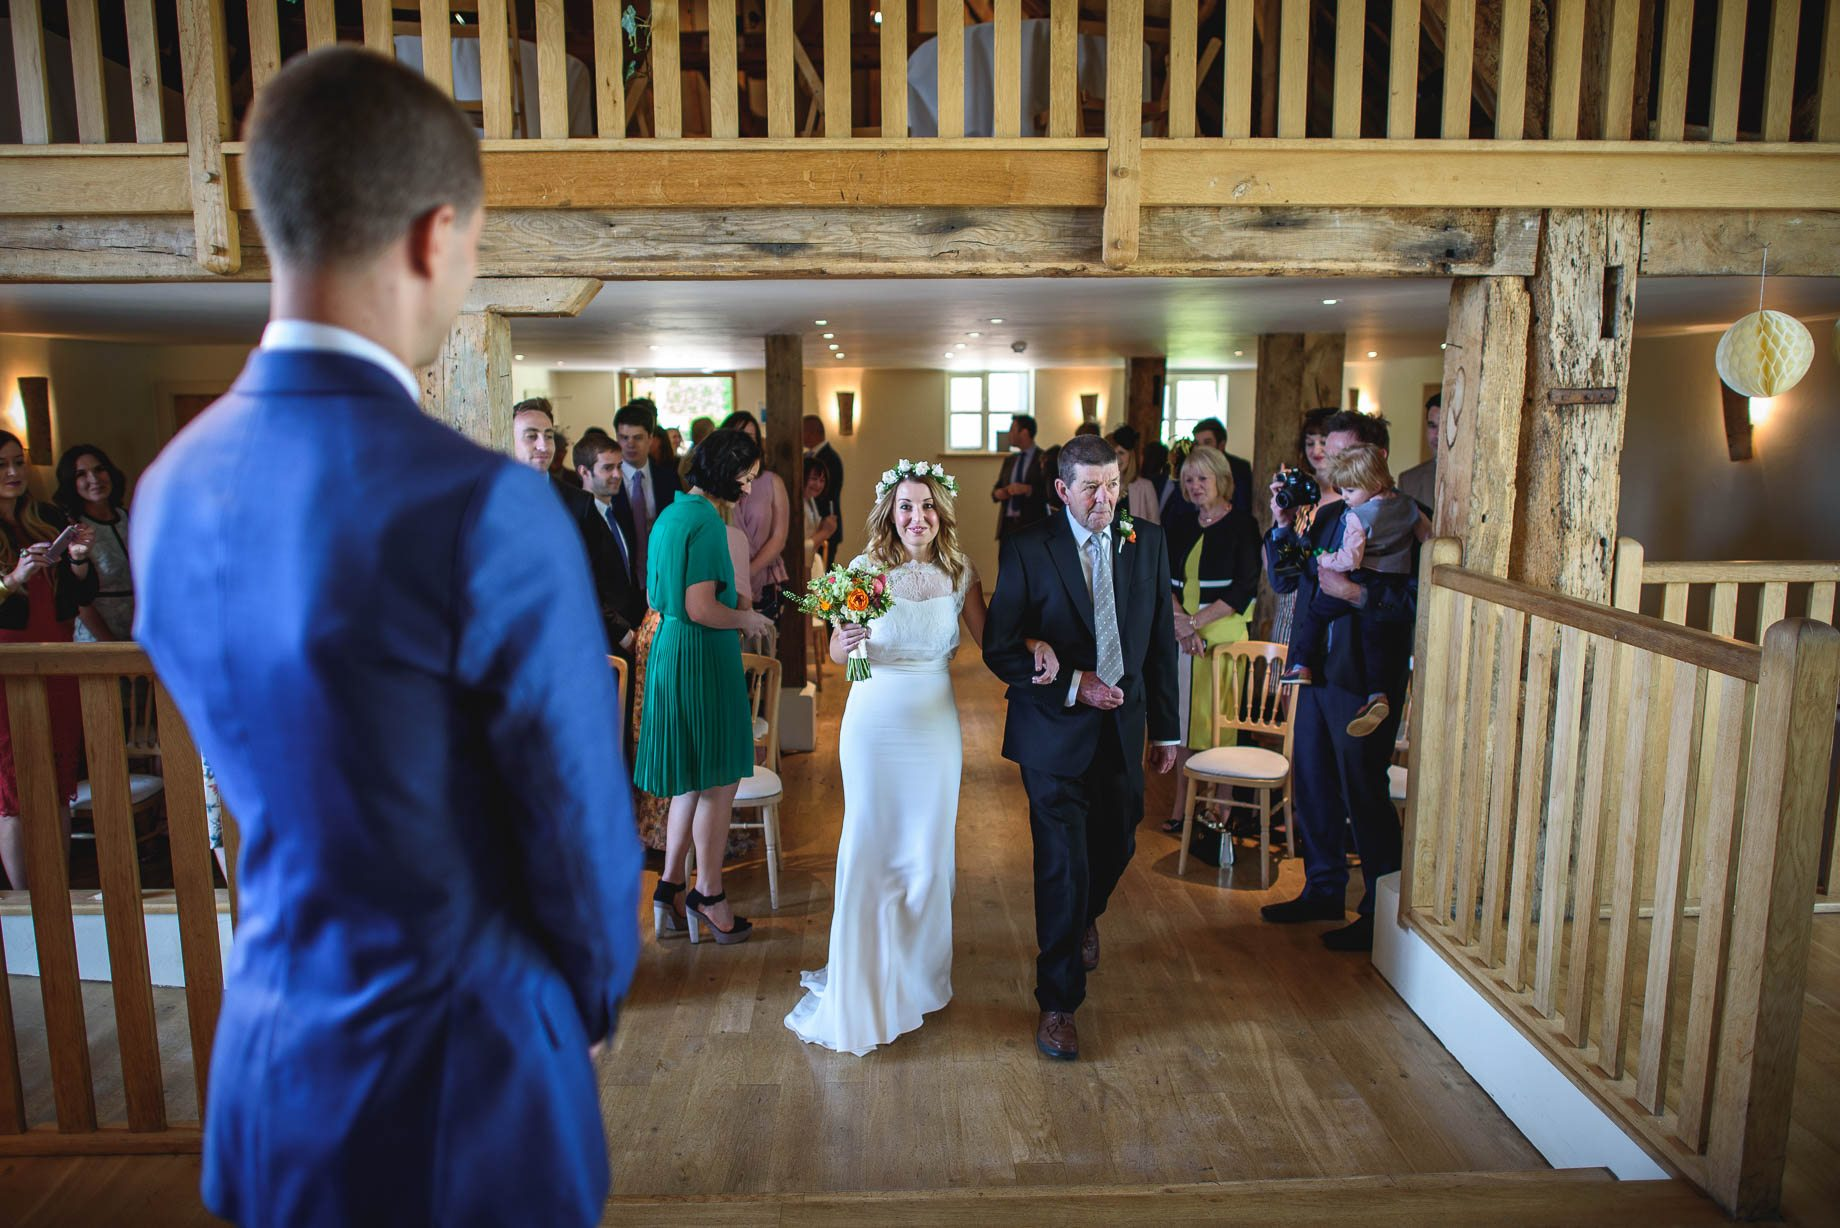 Bury Court Barn wedding photography by Guy Collier - Jo and Jamie (57 of 160)